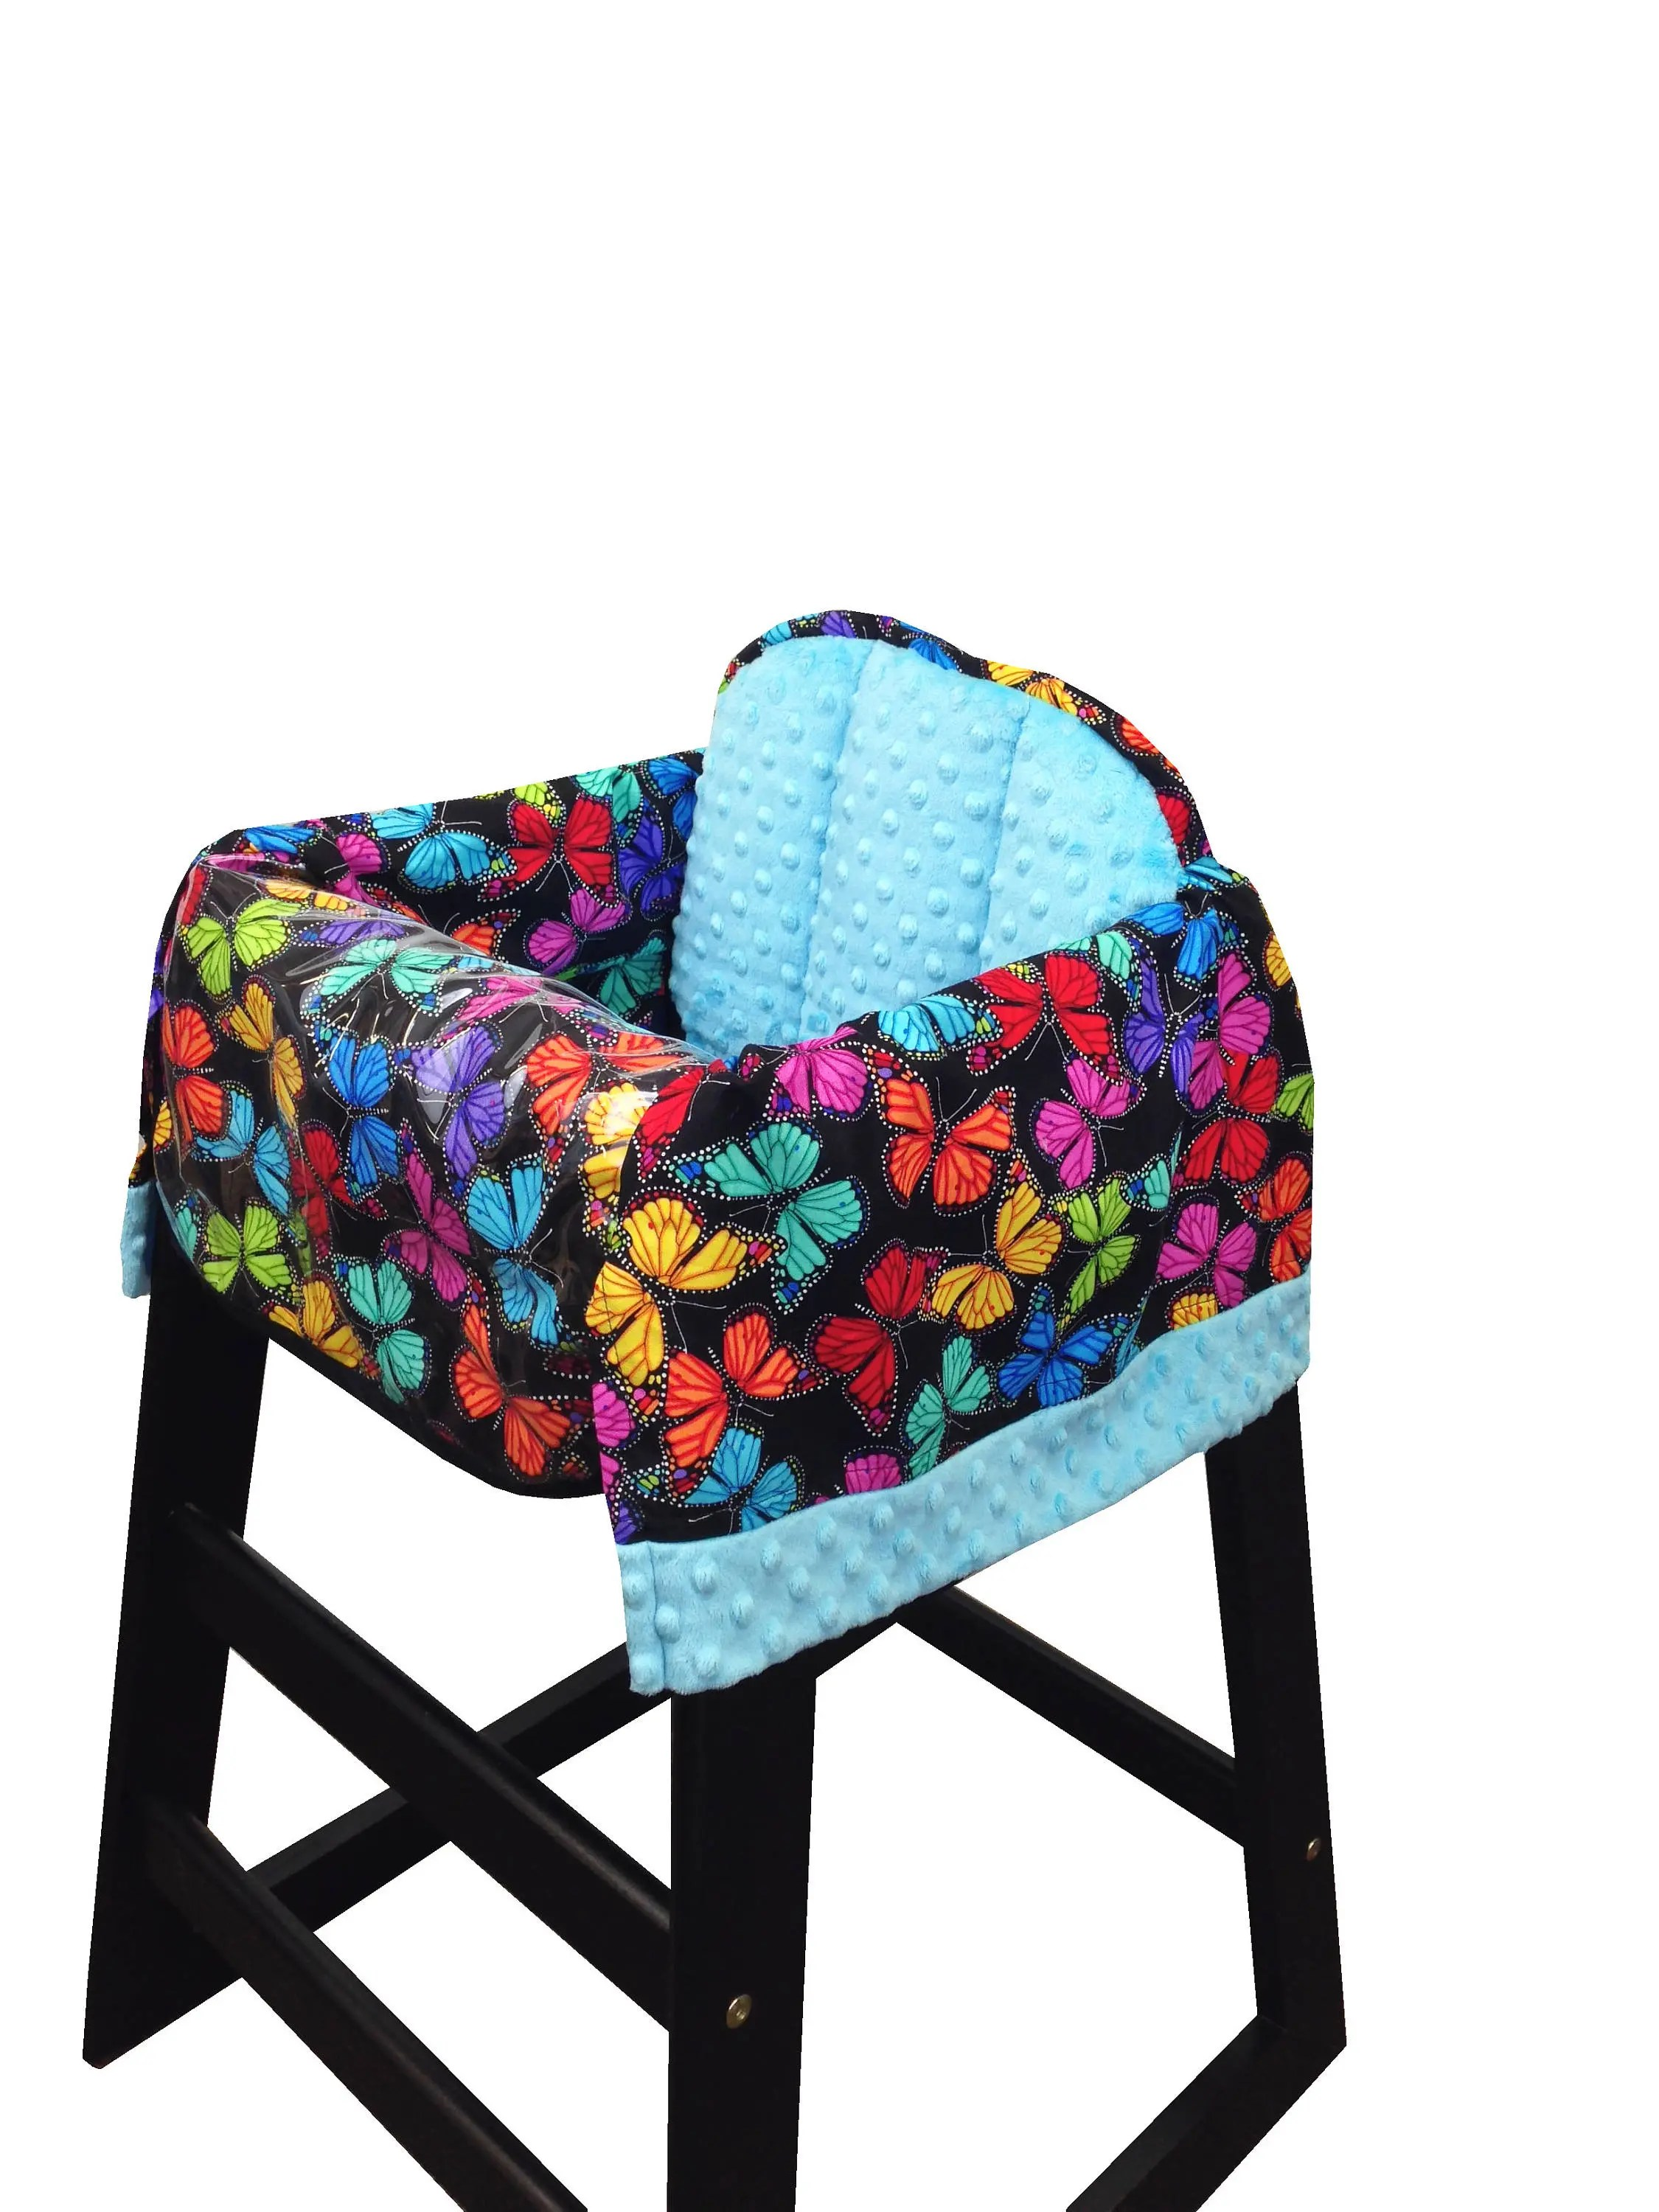 Restaurant High Chair Cover Butterfly High Chair Cover Restaurant Use